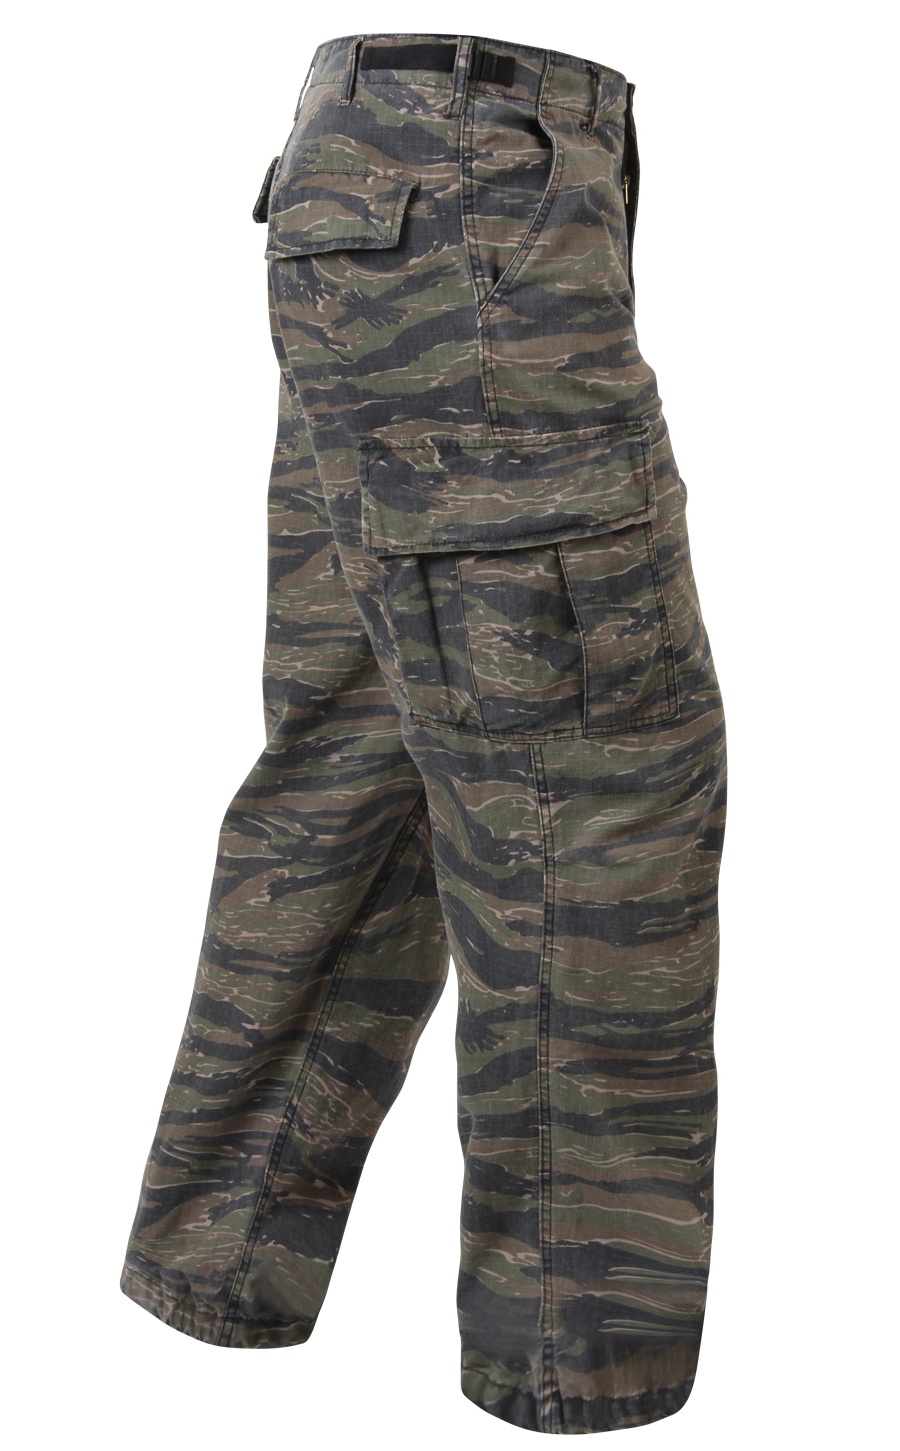 Vietnam Era Tiger Stripe Camo US Army Pants, Fatigues by Rothco